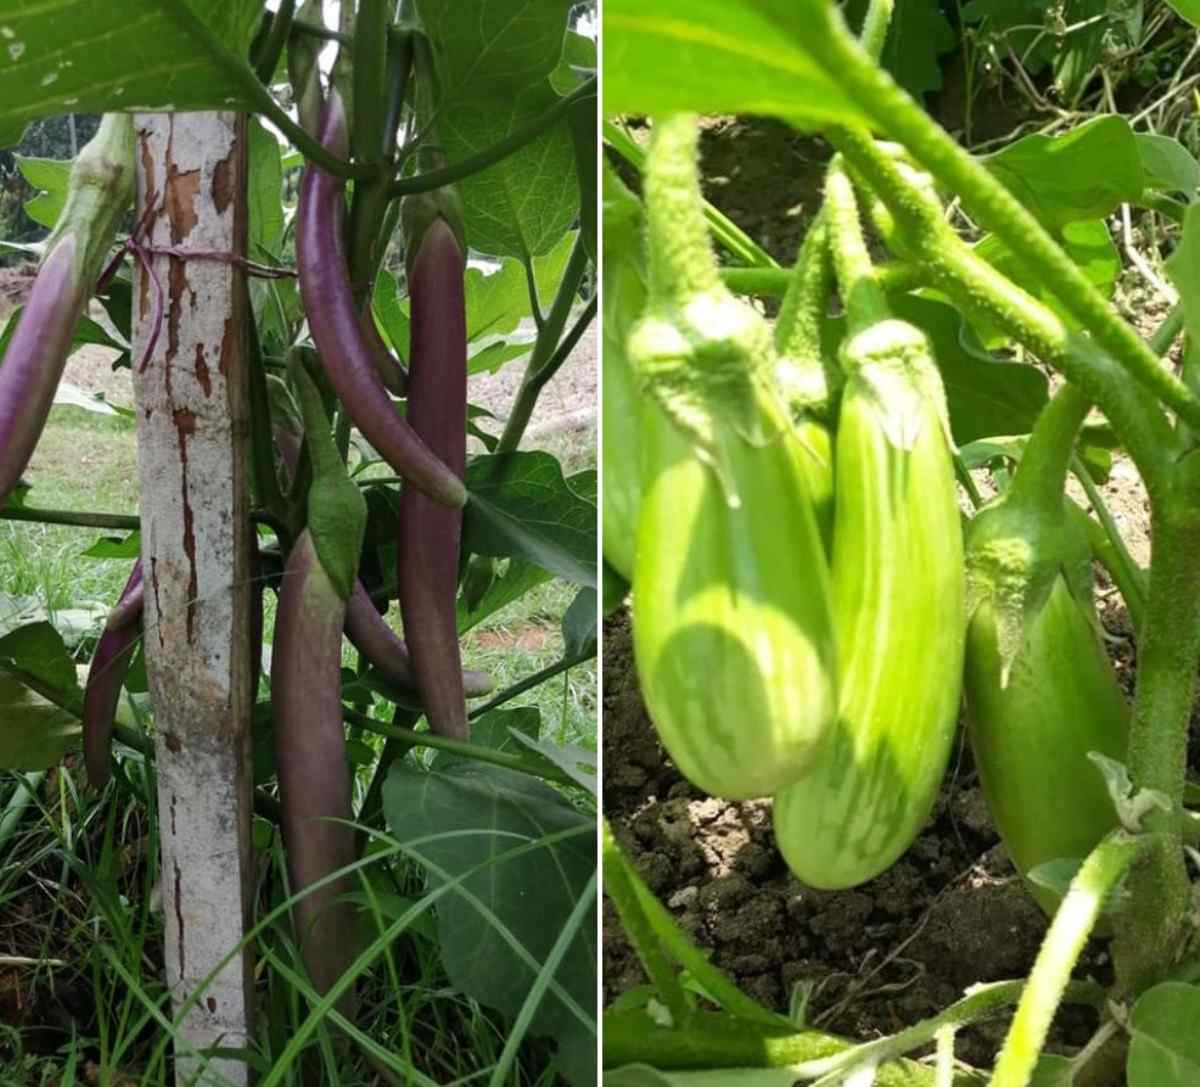 Conditions for growing Eggplant.